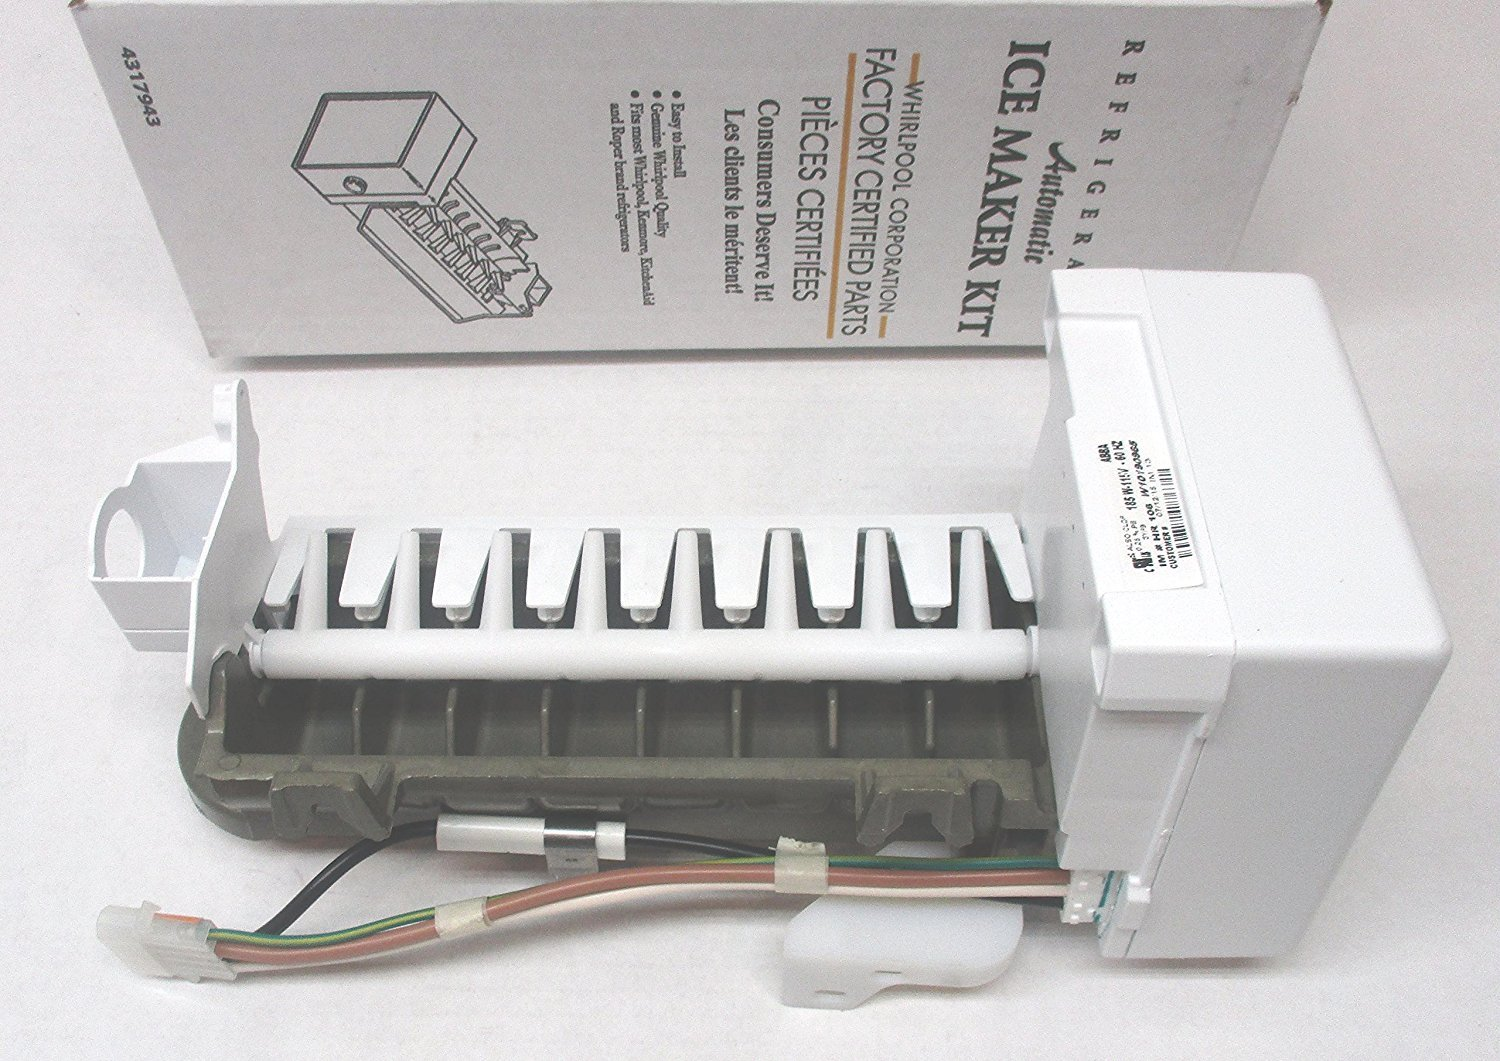 Amazon.com: OEM FACTORY ORIGINAL GENUINE FSP WHIRLPOOL KENMORE MAYTAG ICE  MAKER KIT (Replaces these part #'s - 4317943, AP2984633, 1857, 4210317,  4211173, ...